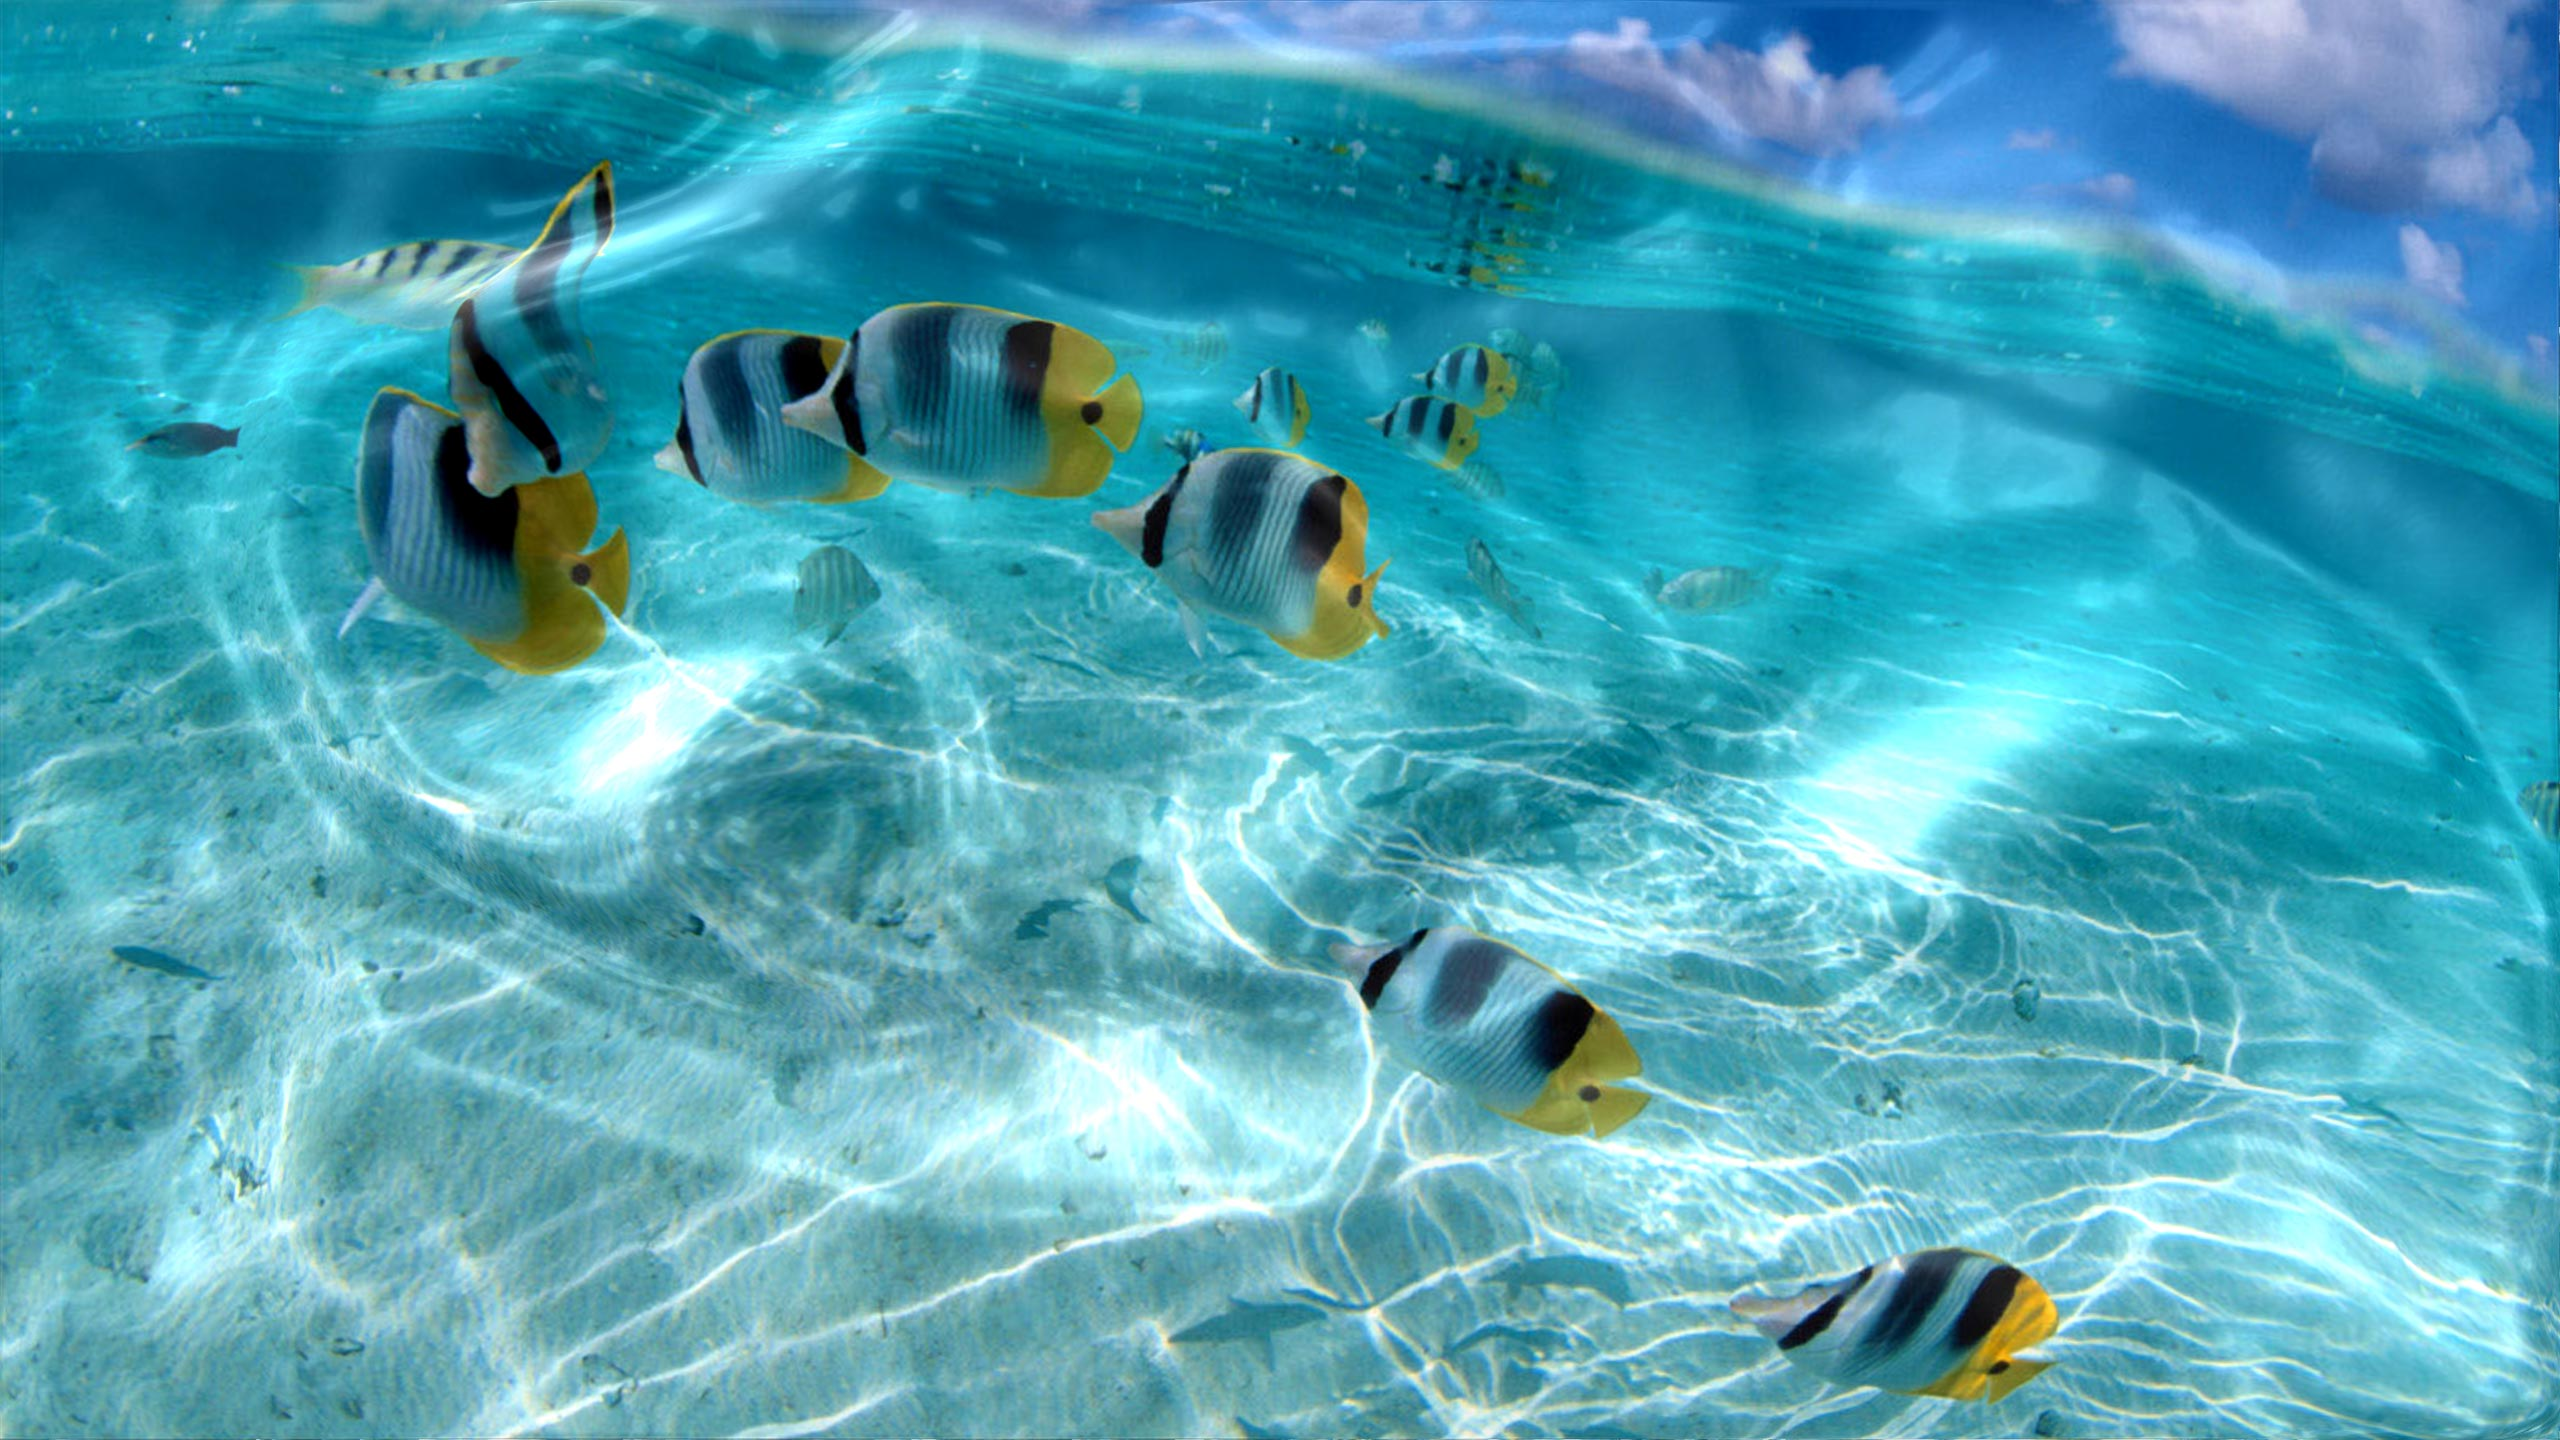 Watery Desktop Animated Wallpaperjpg 2560x1440